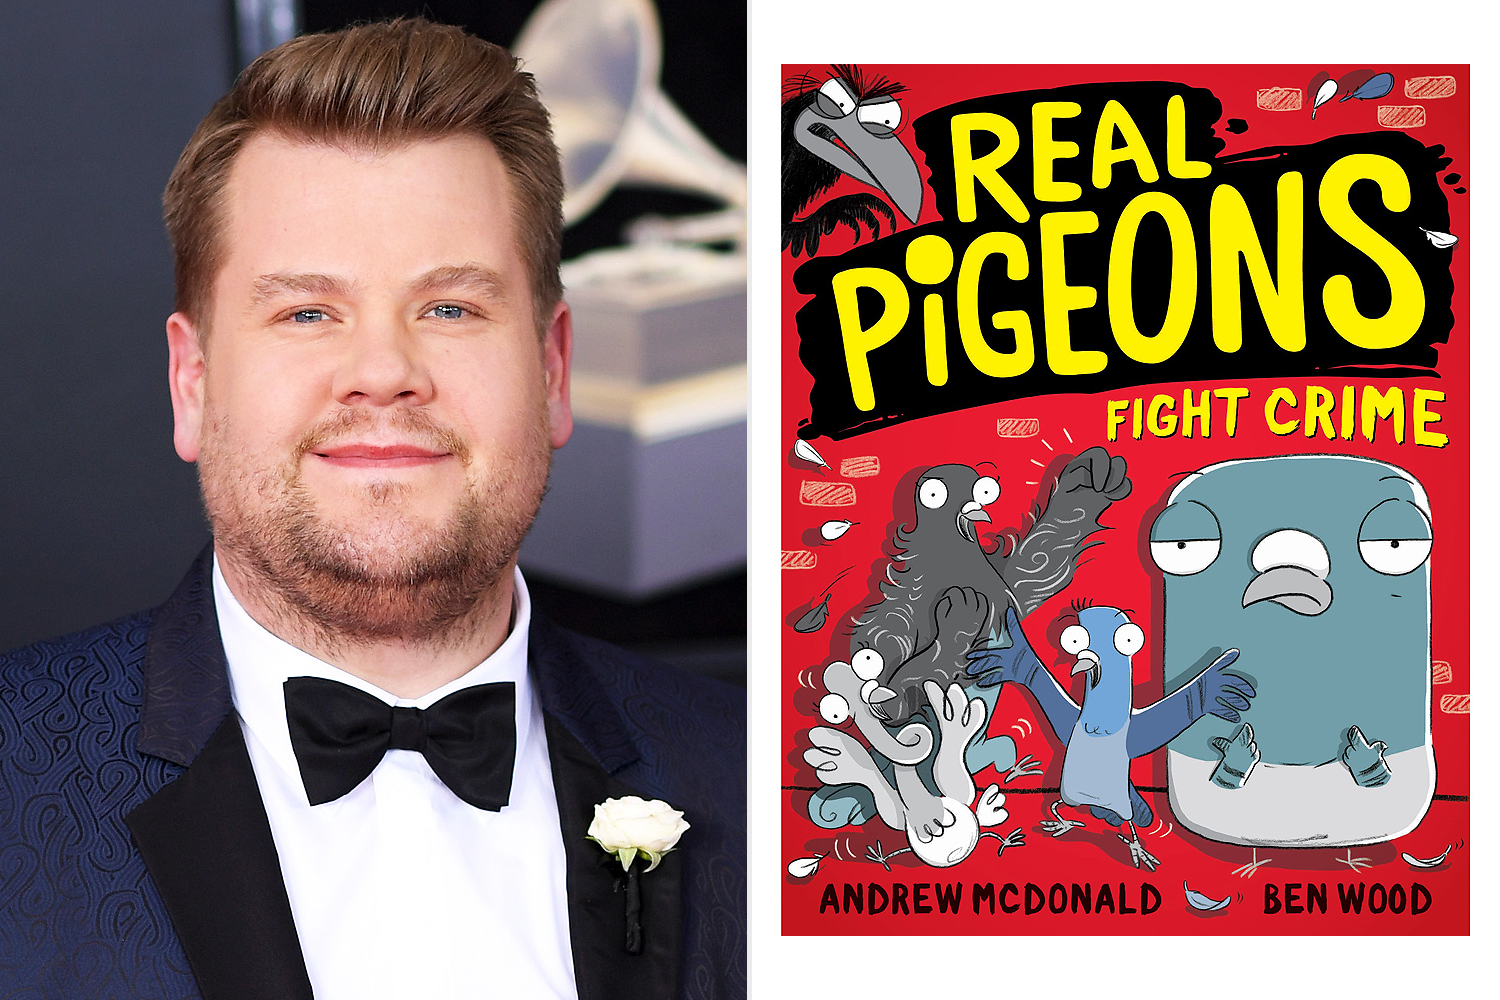 James Corden; Real Pigeons Fight Crime